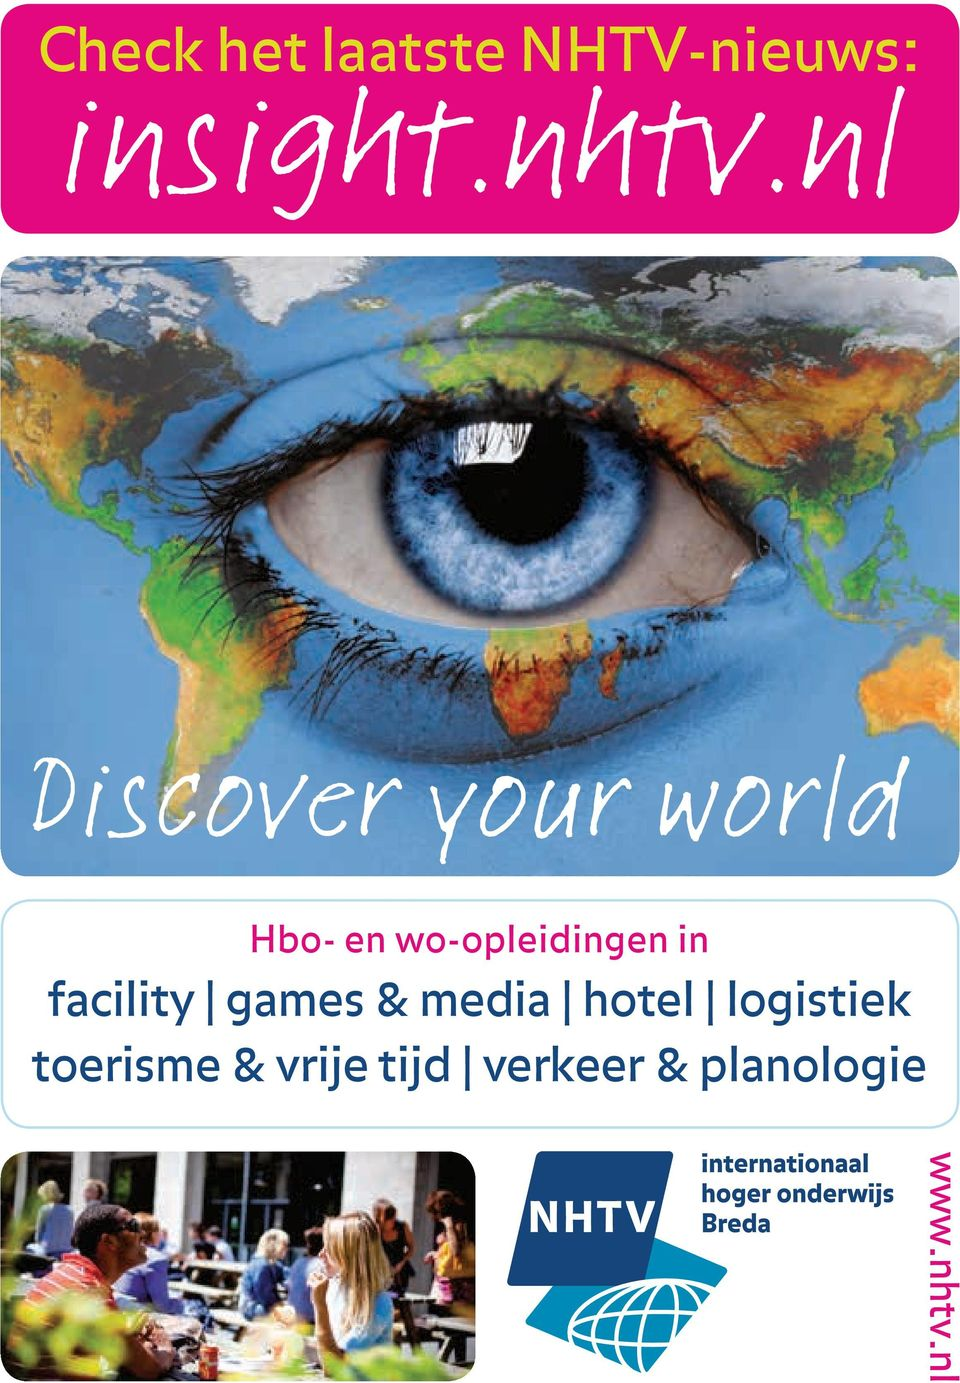 in facility games & media hotel logistiek